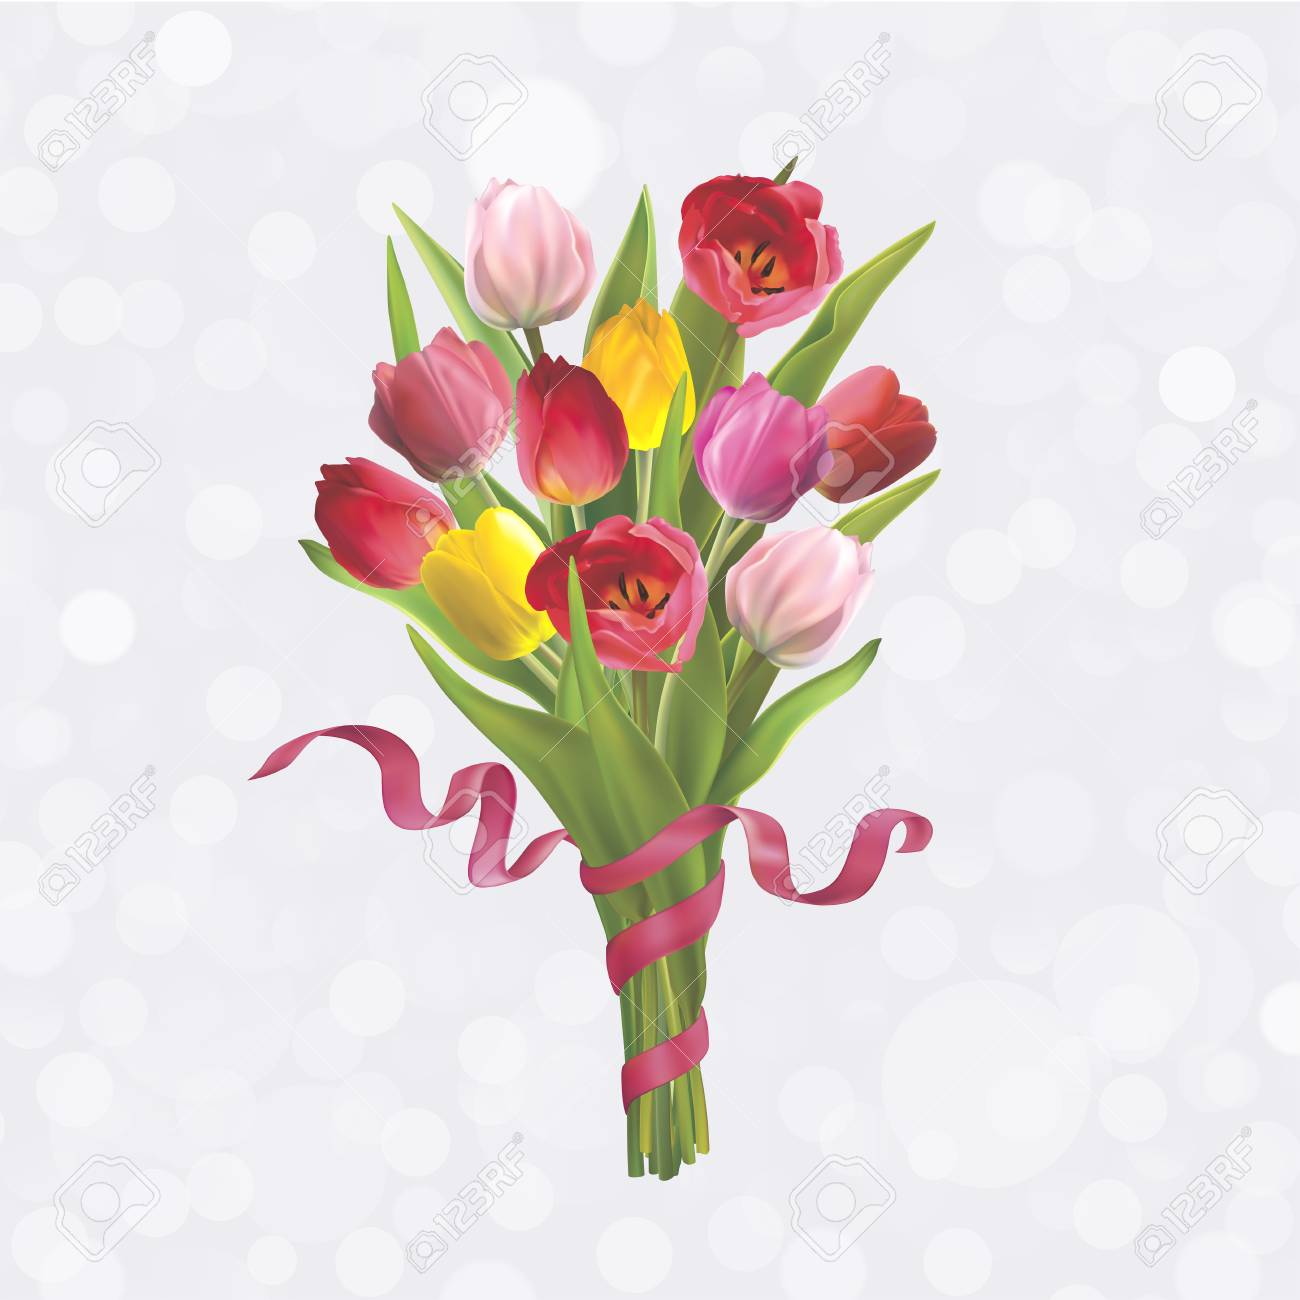 Beautiful bouquet of colorful tulips background for postcard beautiful bouquet of colorful tulips background for postcard on 8 march mothers day izmirmasajfo